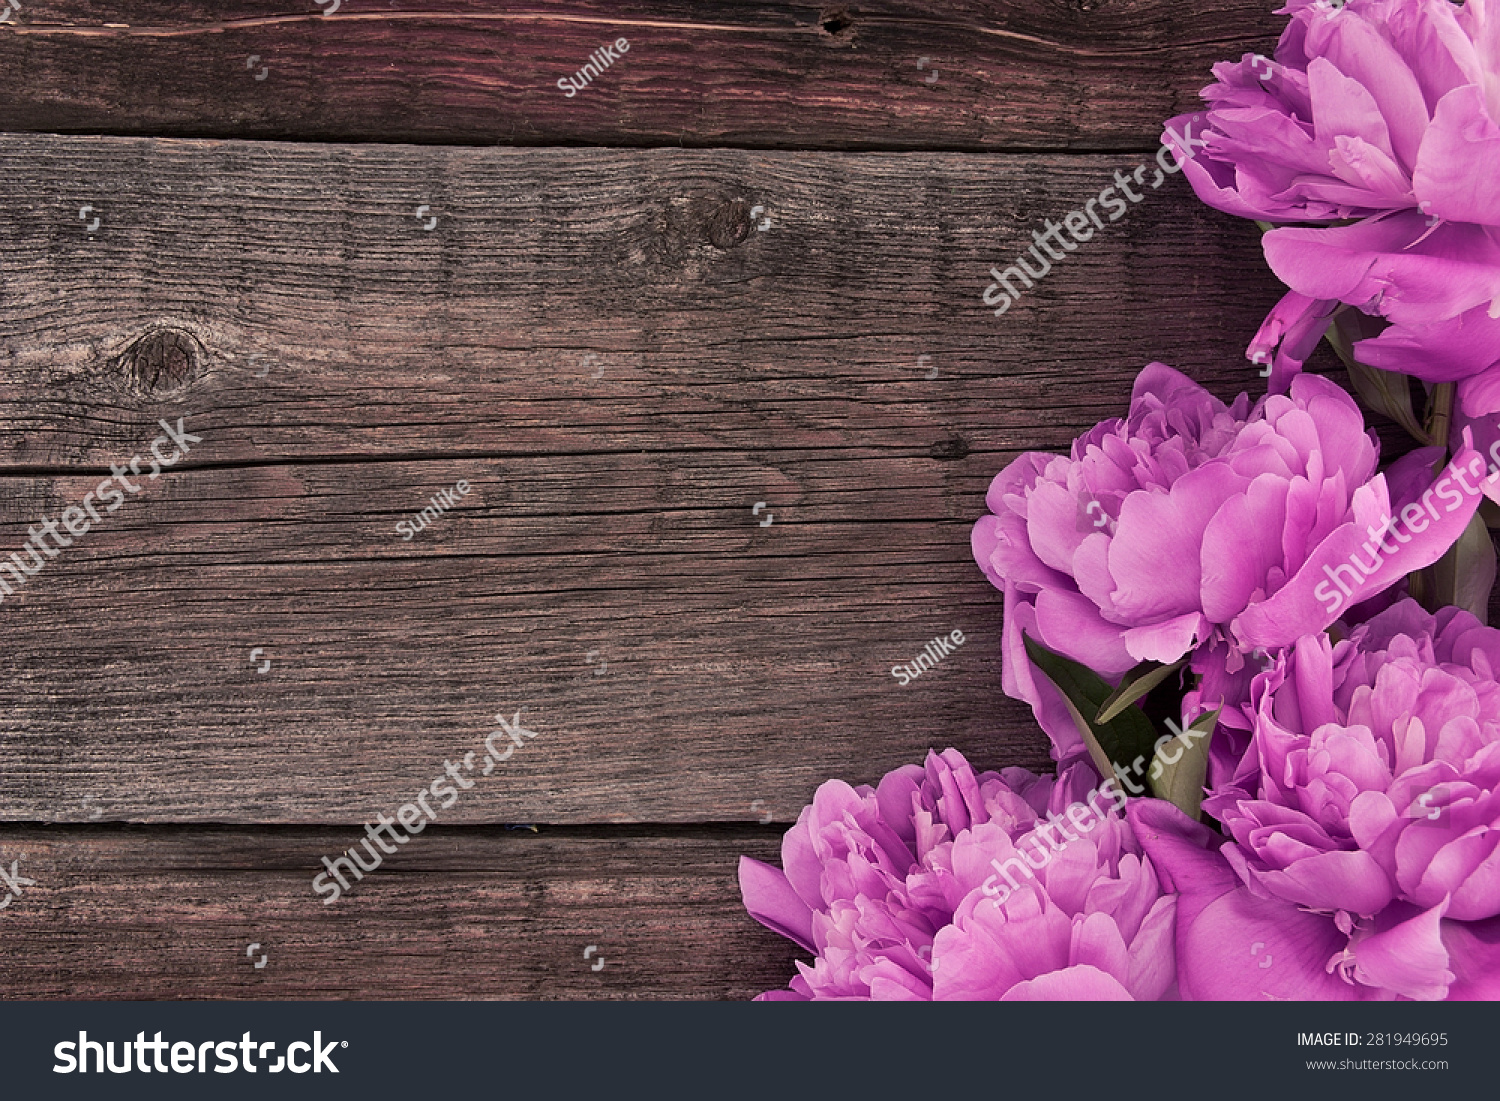 Pink Flowers Roses On Rustic Wooden Background With Copy Space For